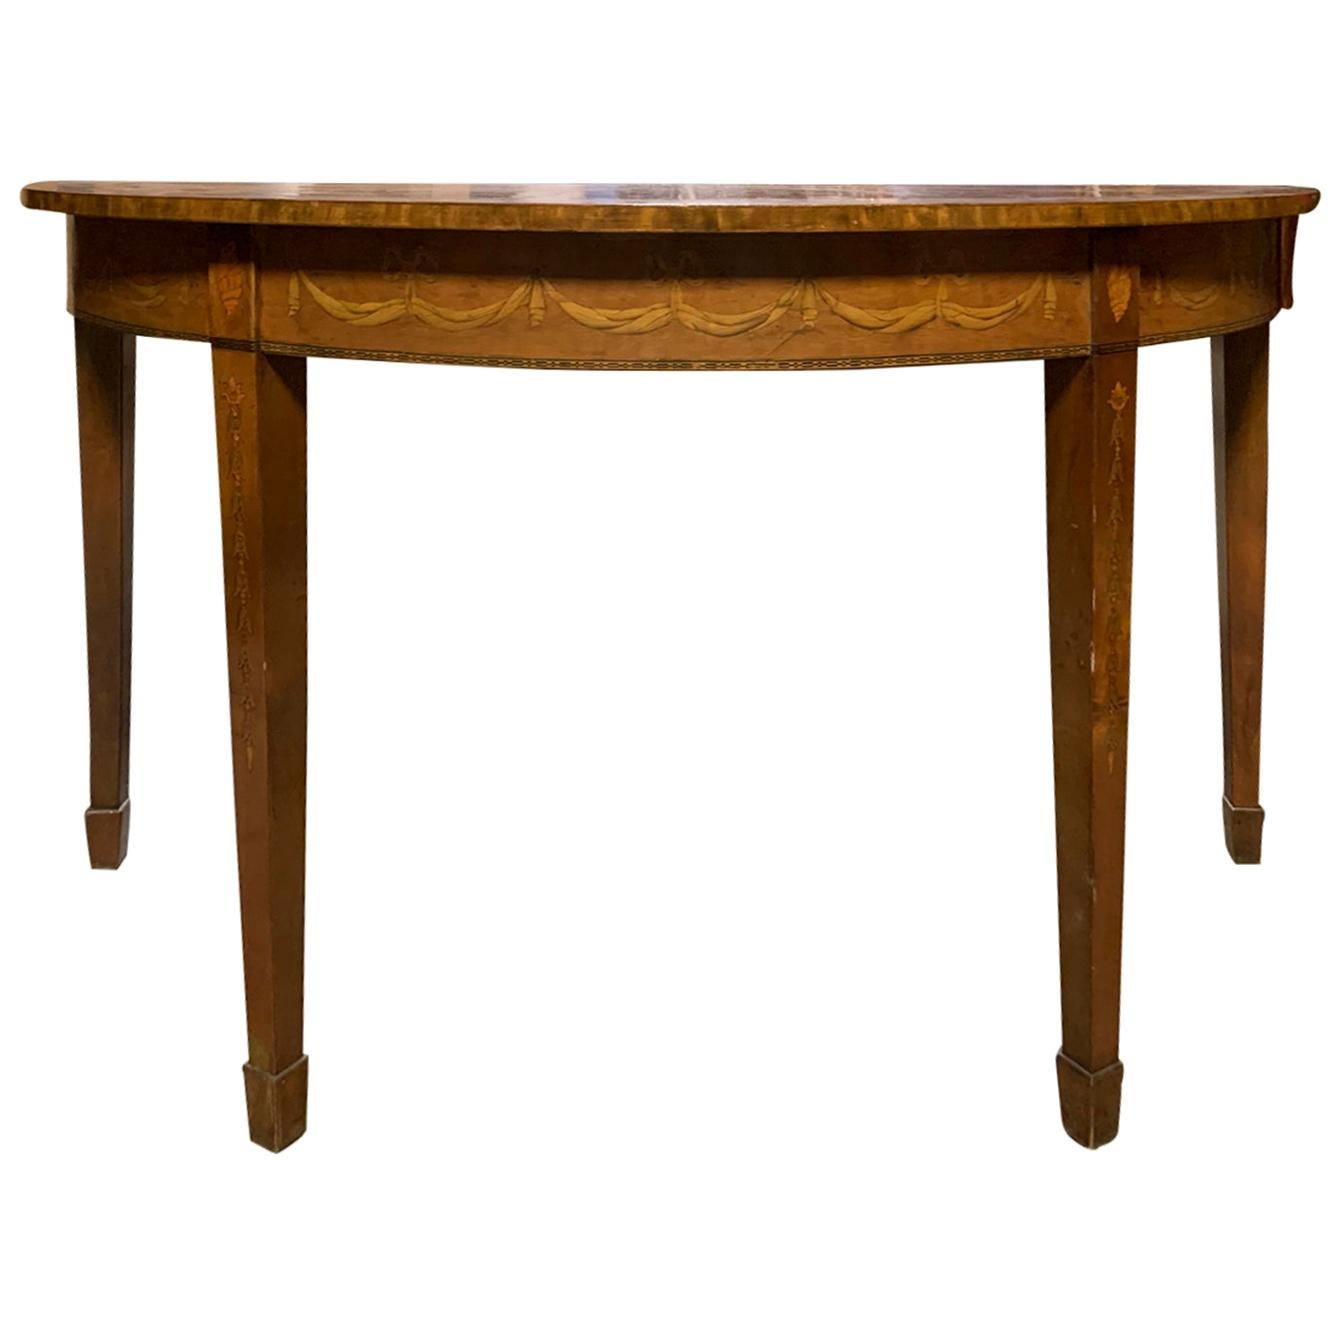 20th Century English Marquetry Demilune Console Table